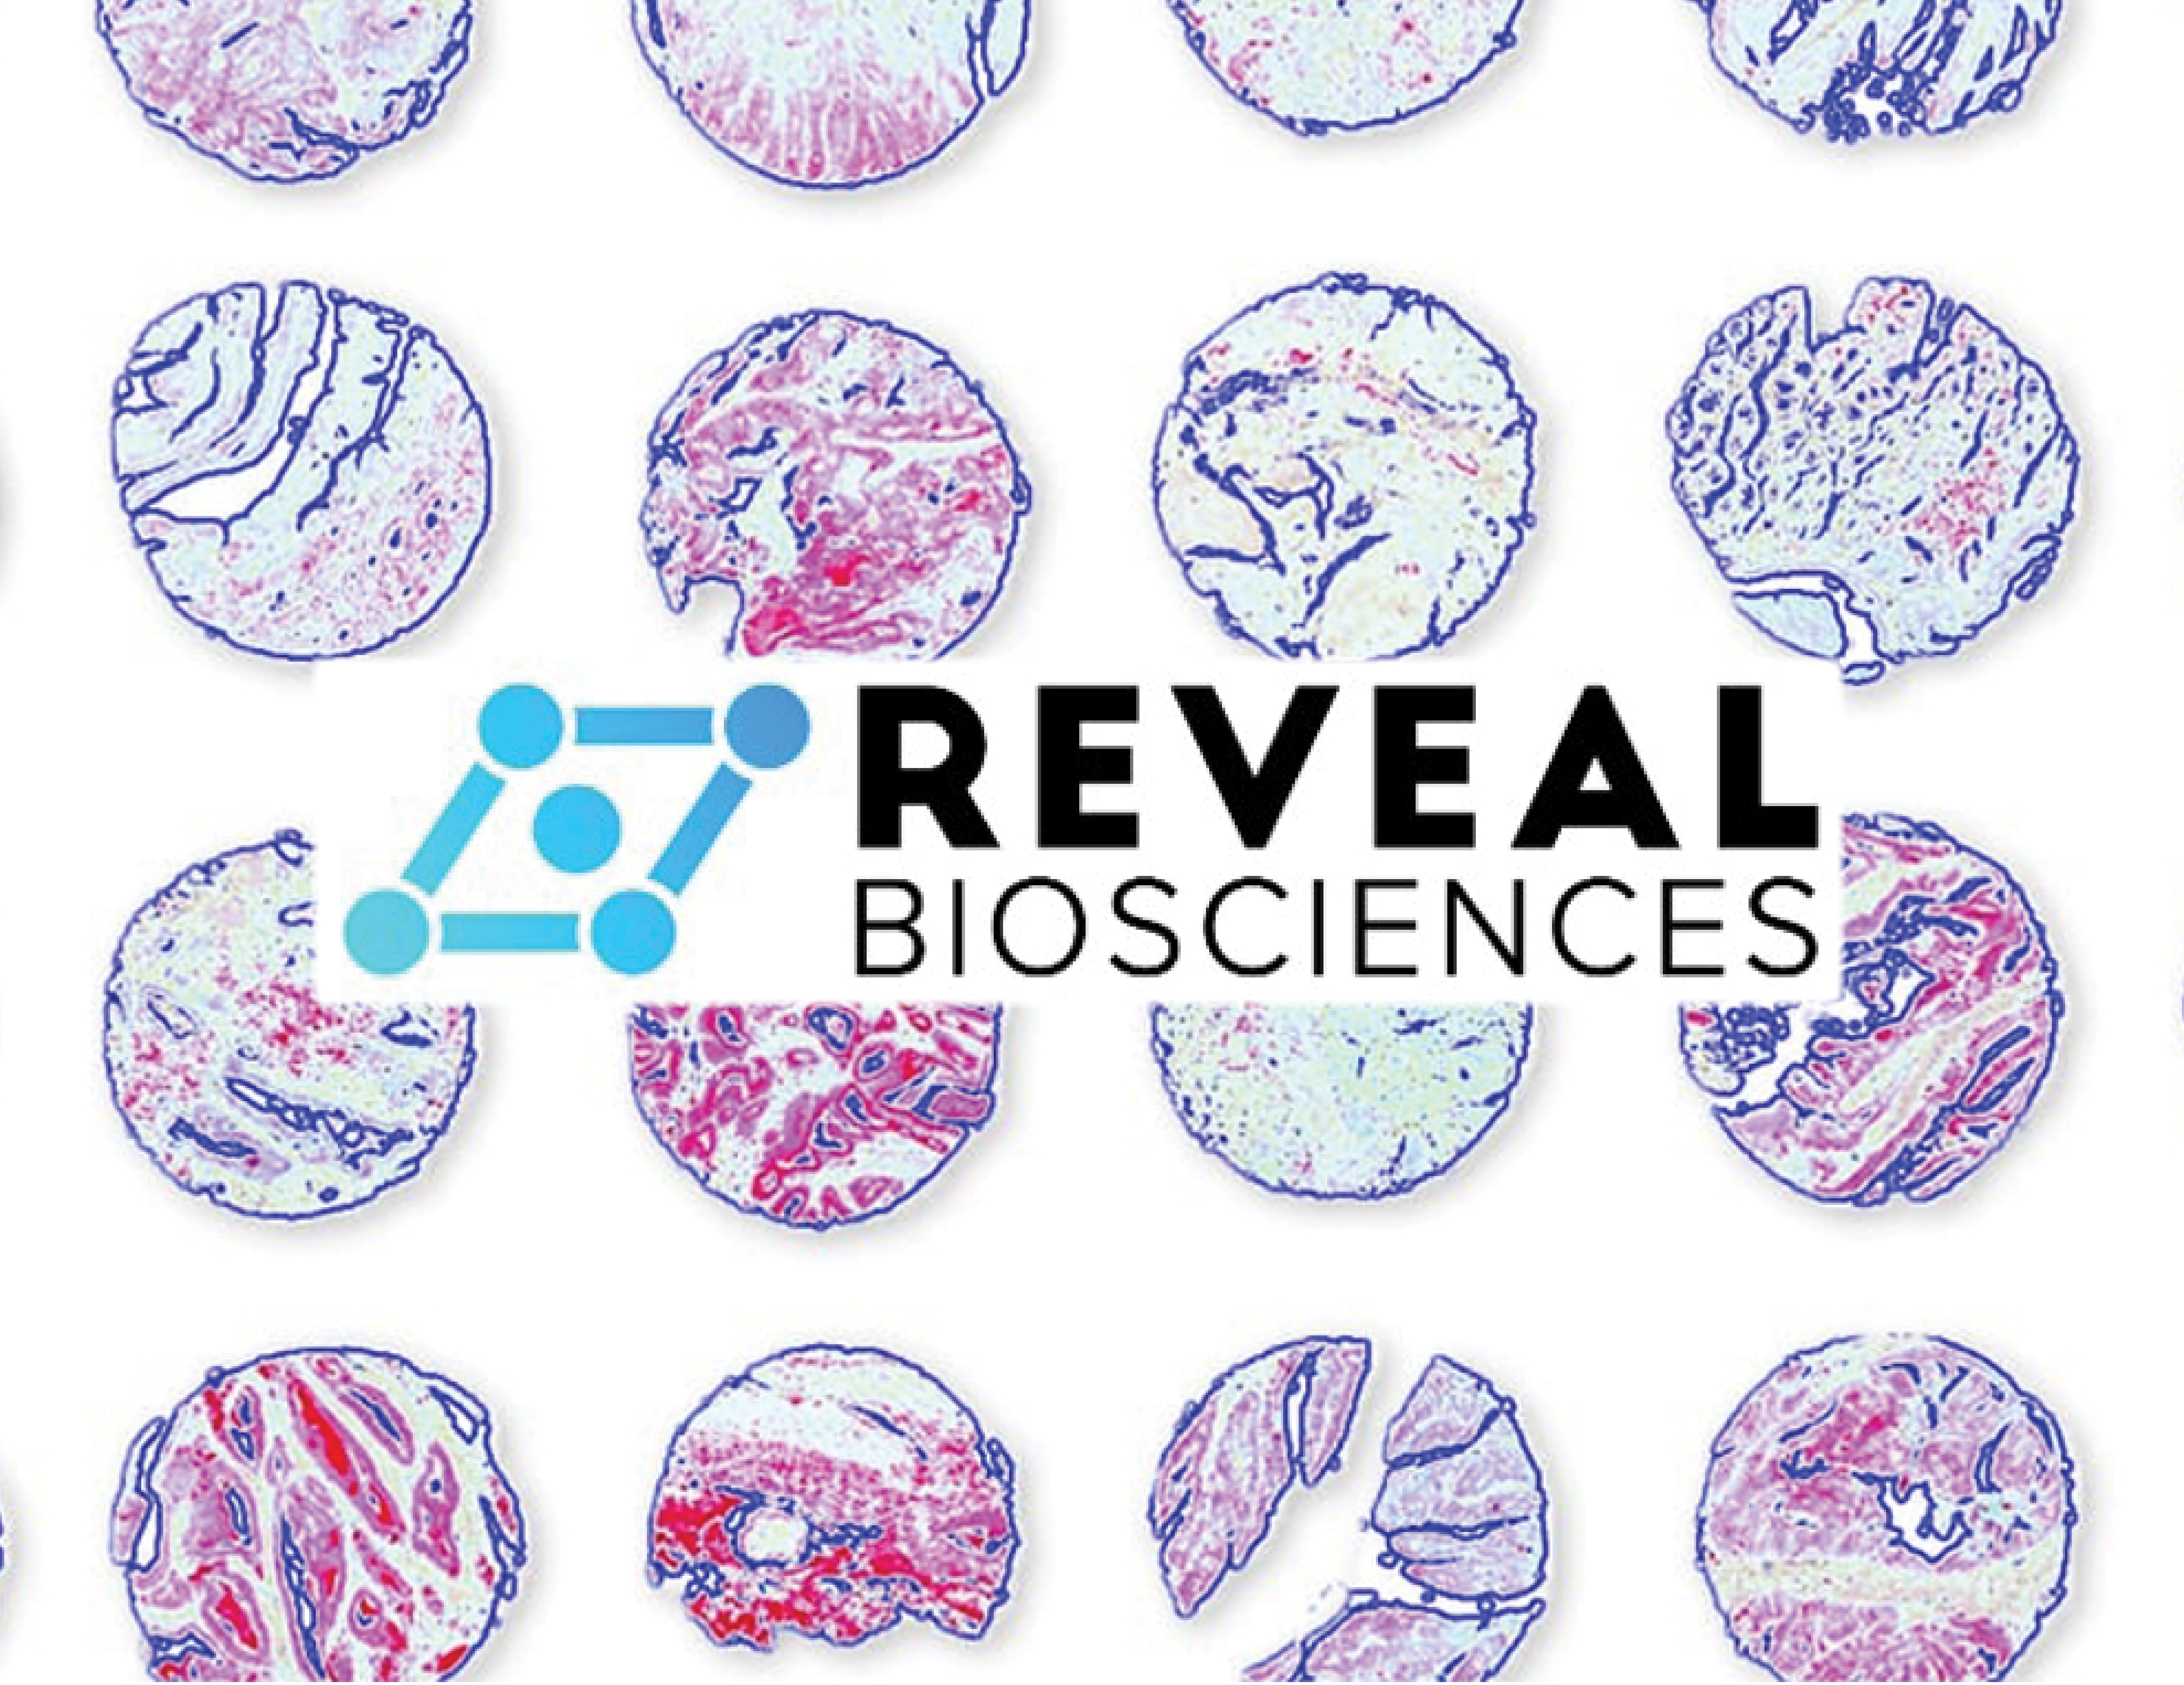 Reveal Biosciences is now part of CellCarta